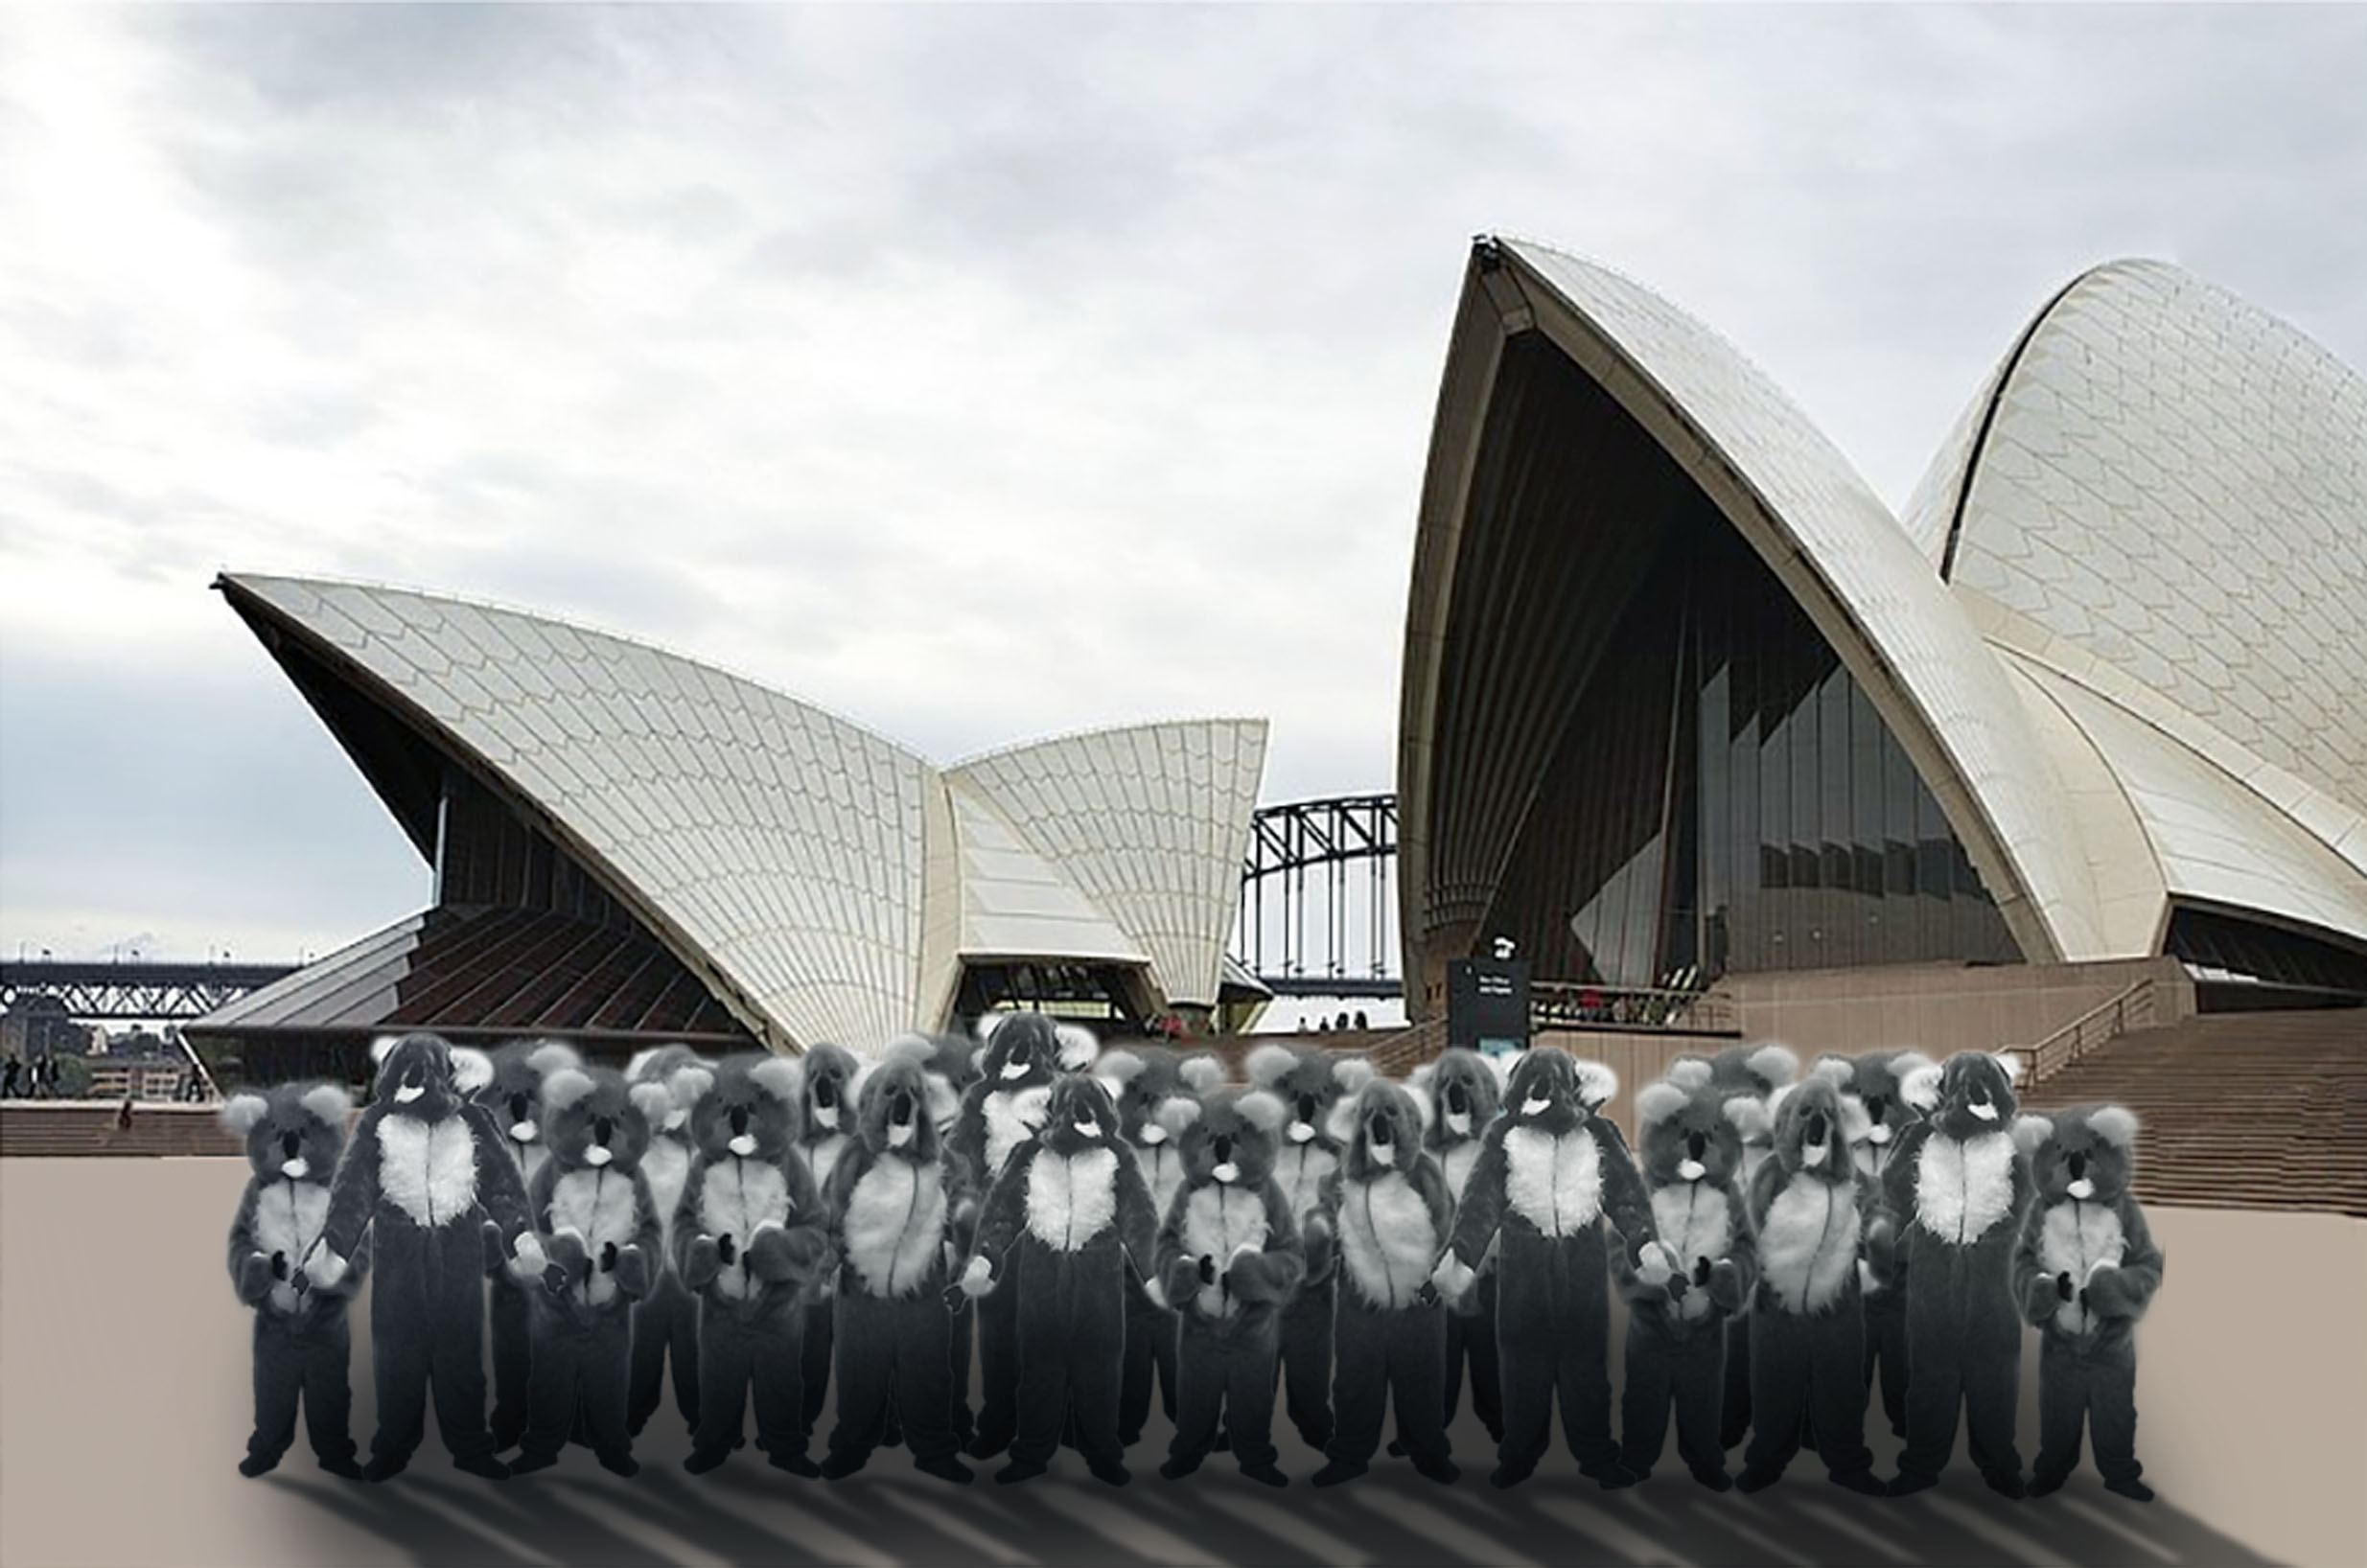 Kathy Temin, Proposal for The Koala Opera, 2014. Courtesy of the artist.